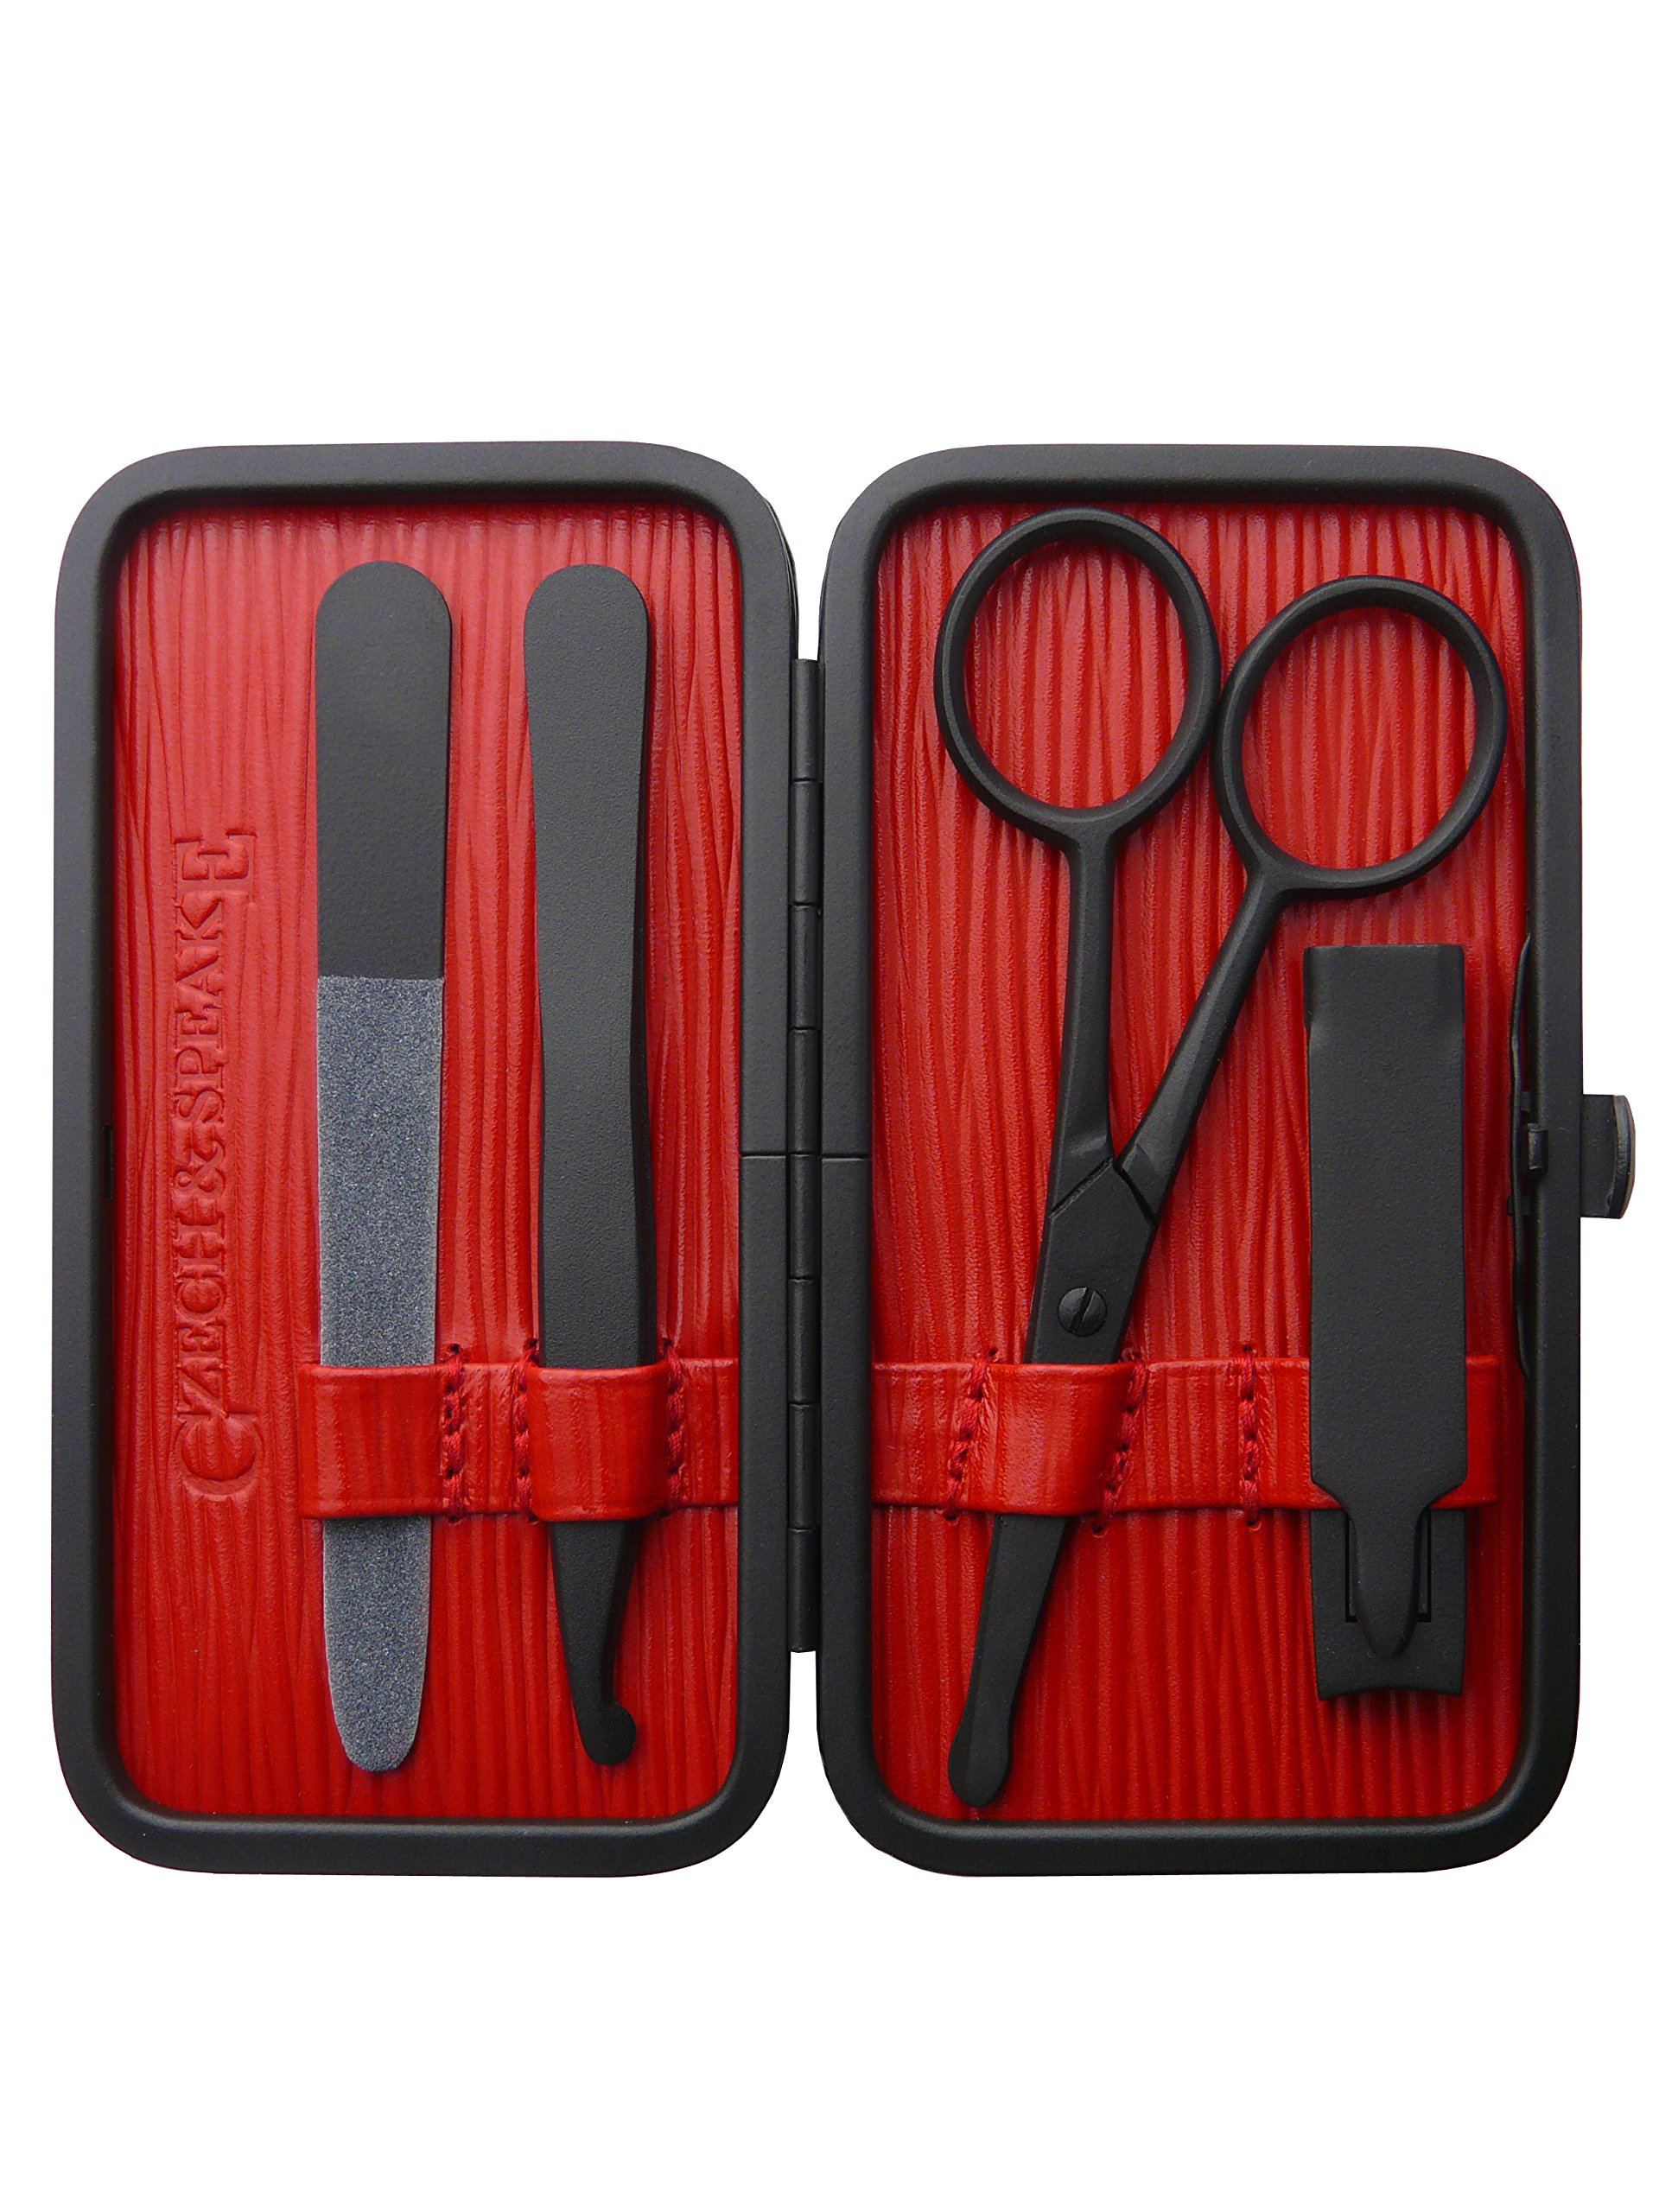 Czech and Speake Air Safe Manicure Set - Black/Red by Czech & Speake